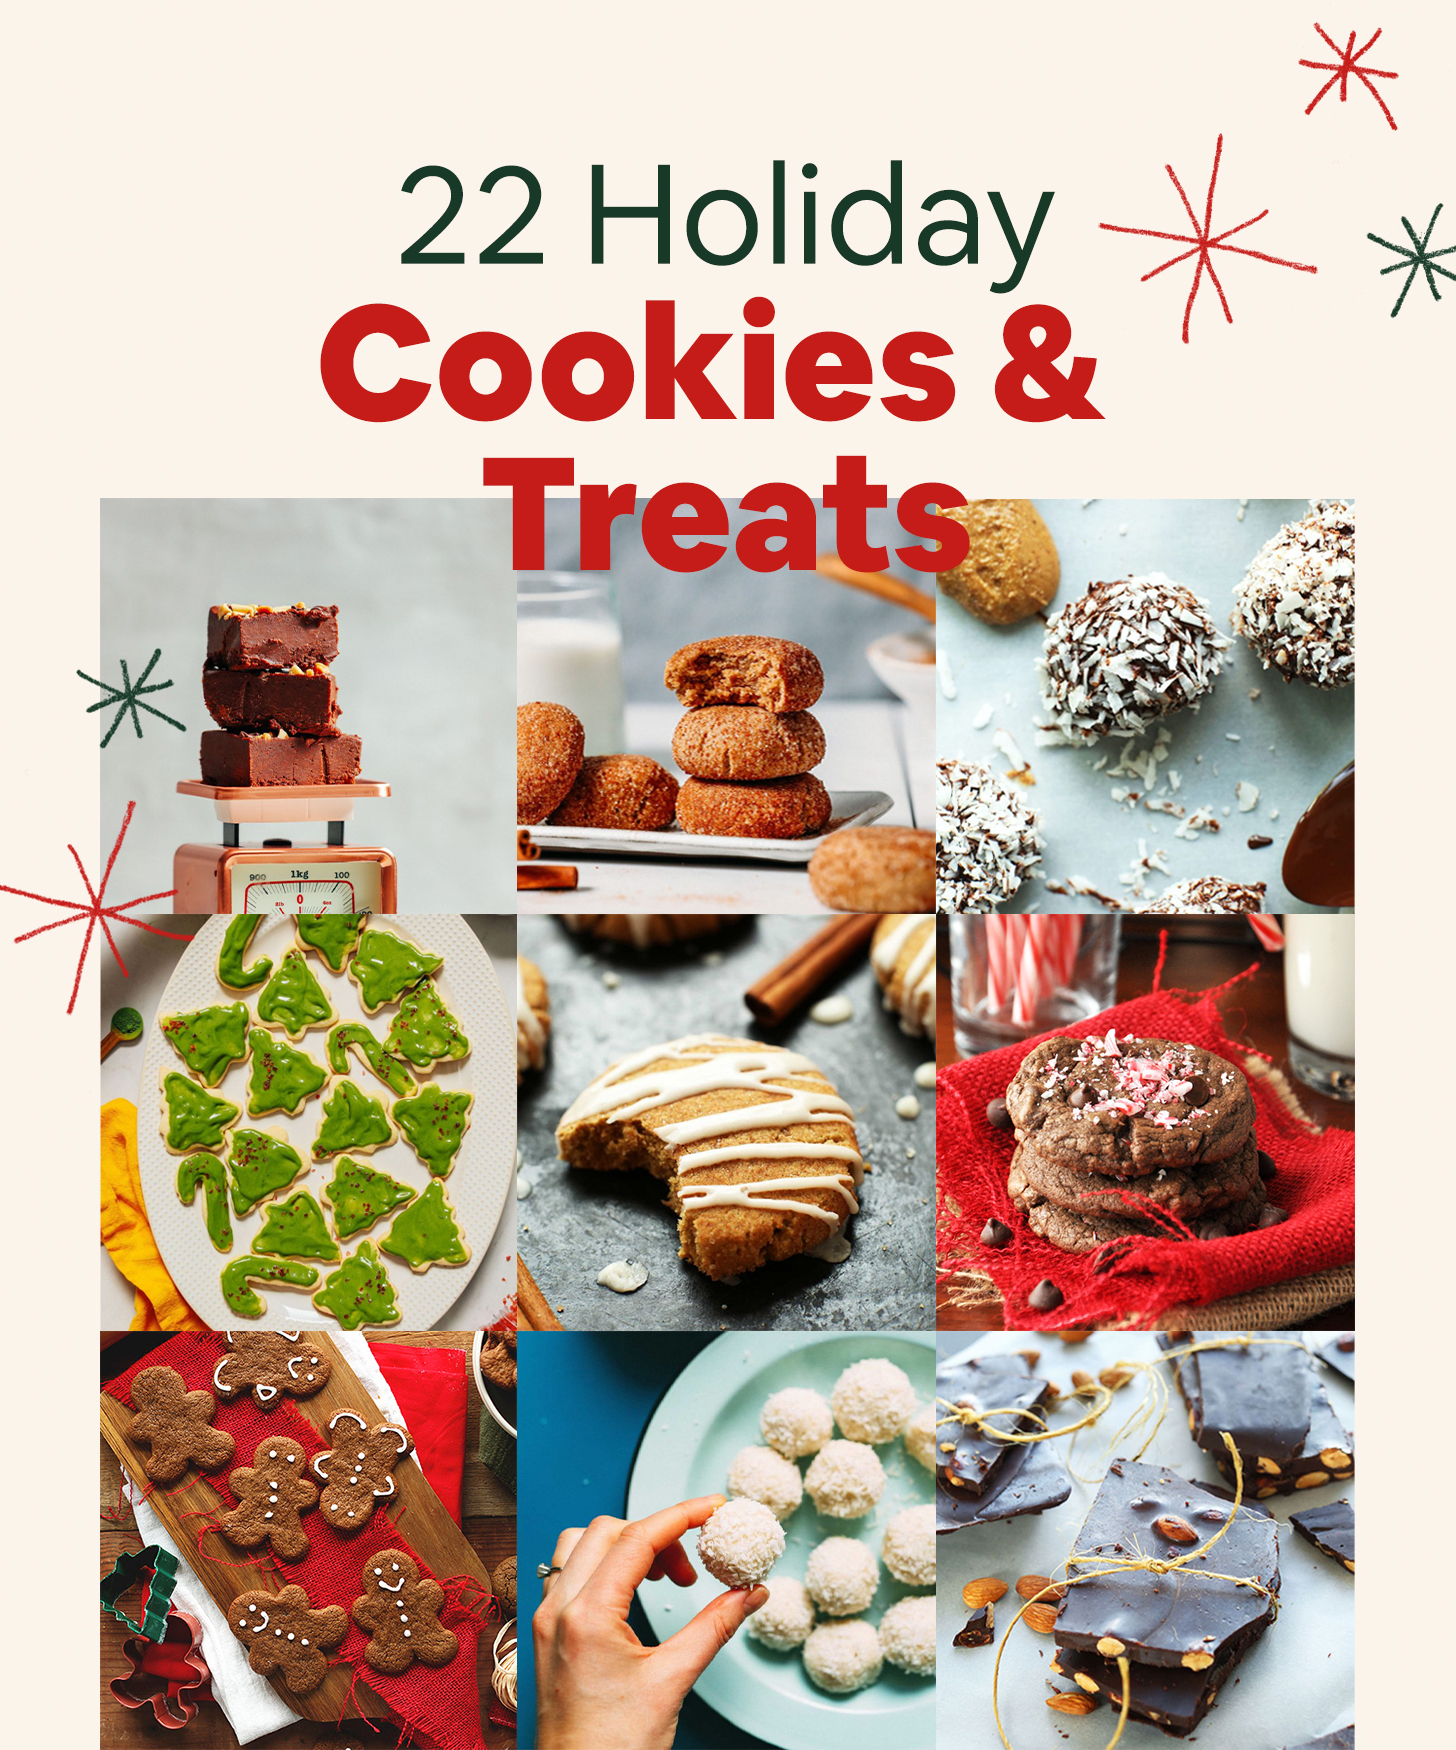 Assortment of recipe photos for our round-up of Holiday Cookies & Treats